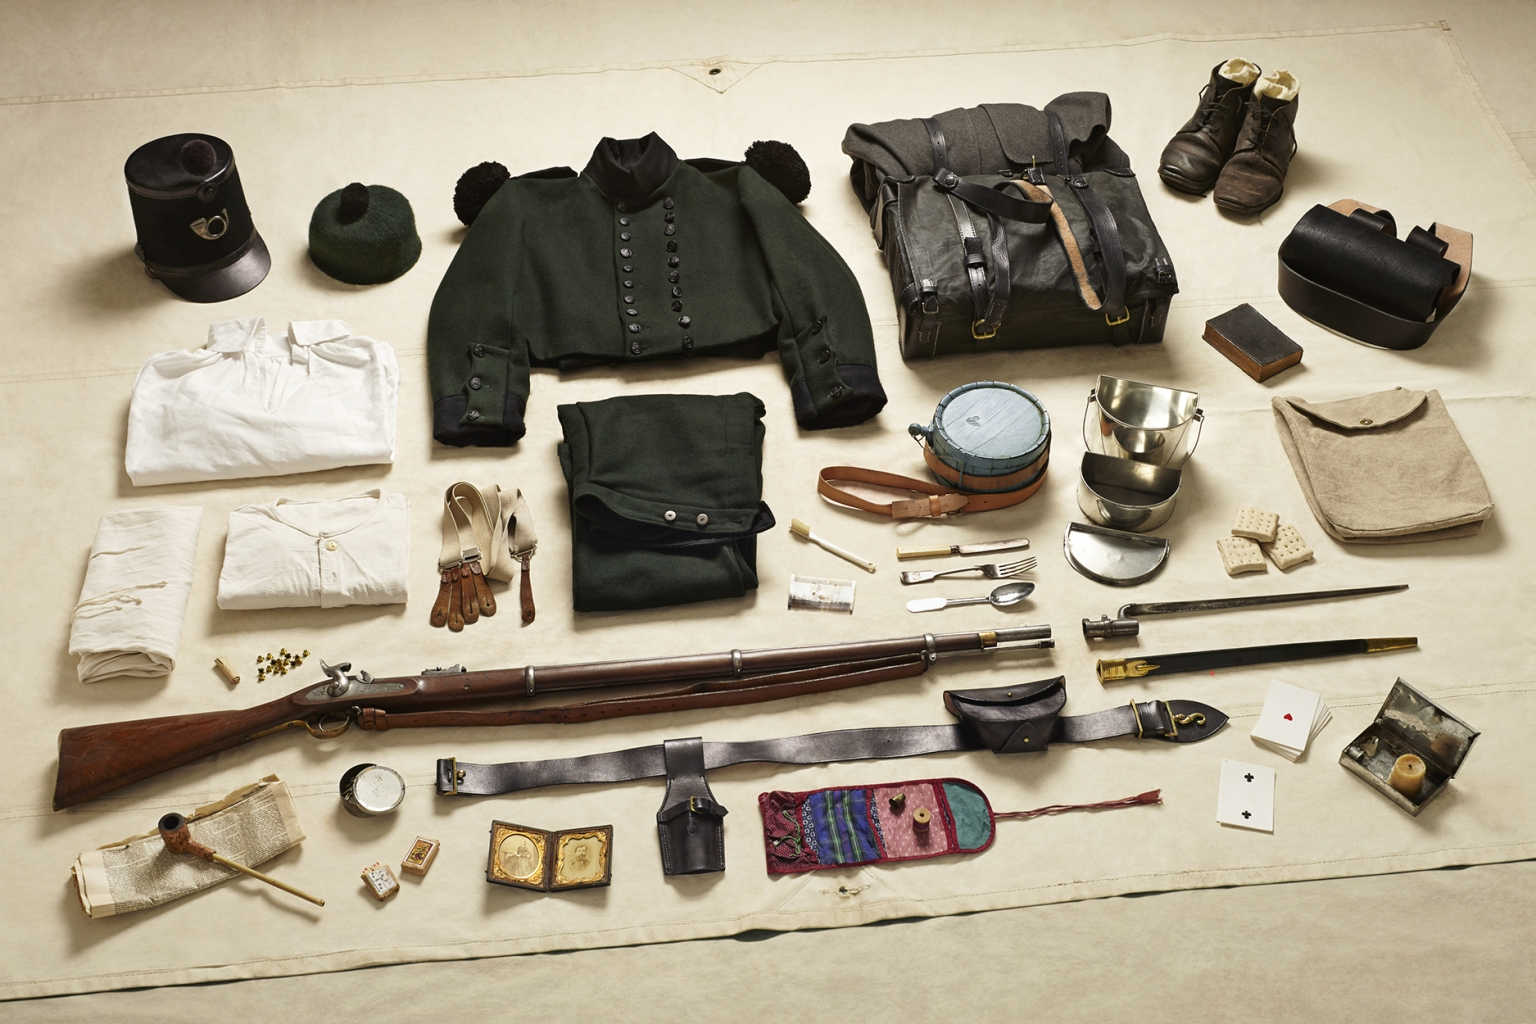 Private Soldier, Rifle Brigade, Battle of the Alma, 1854 - Soldiers' Inventories - Photo by Thom Atkinson